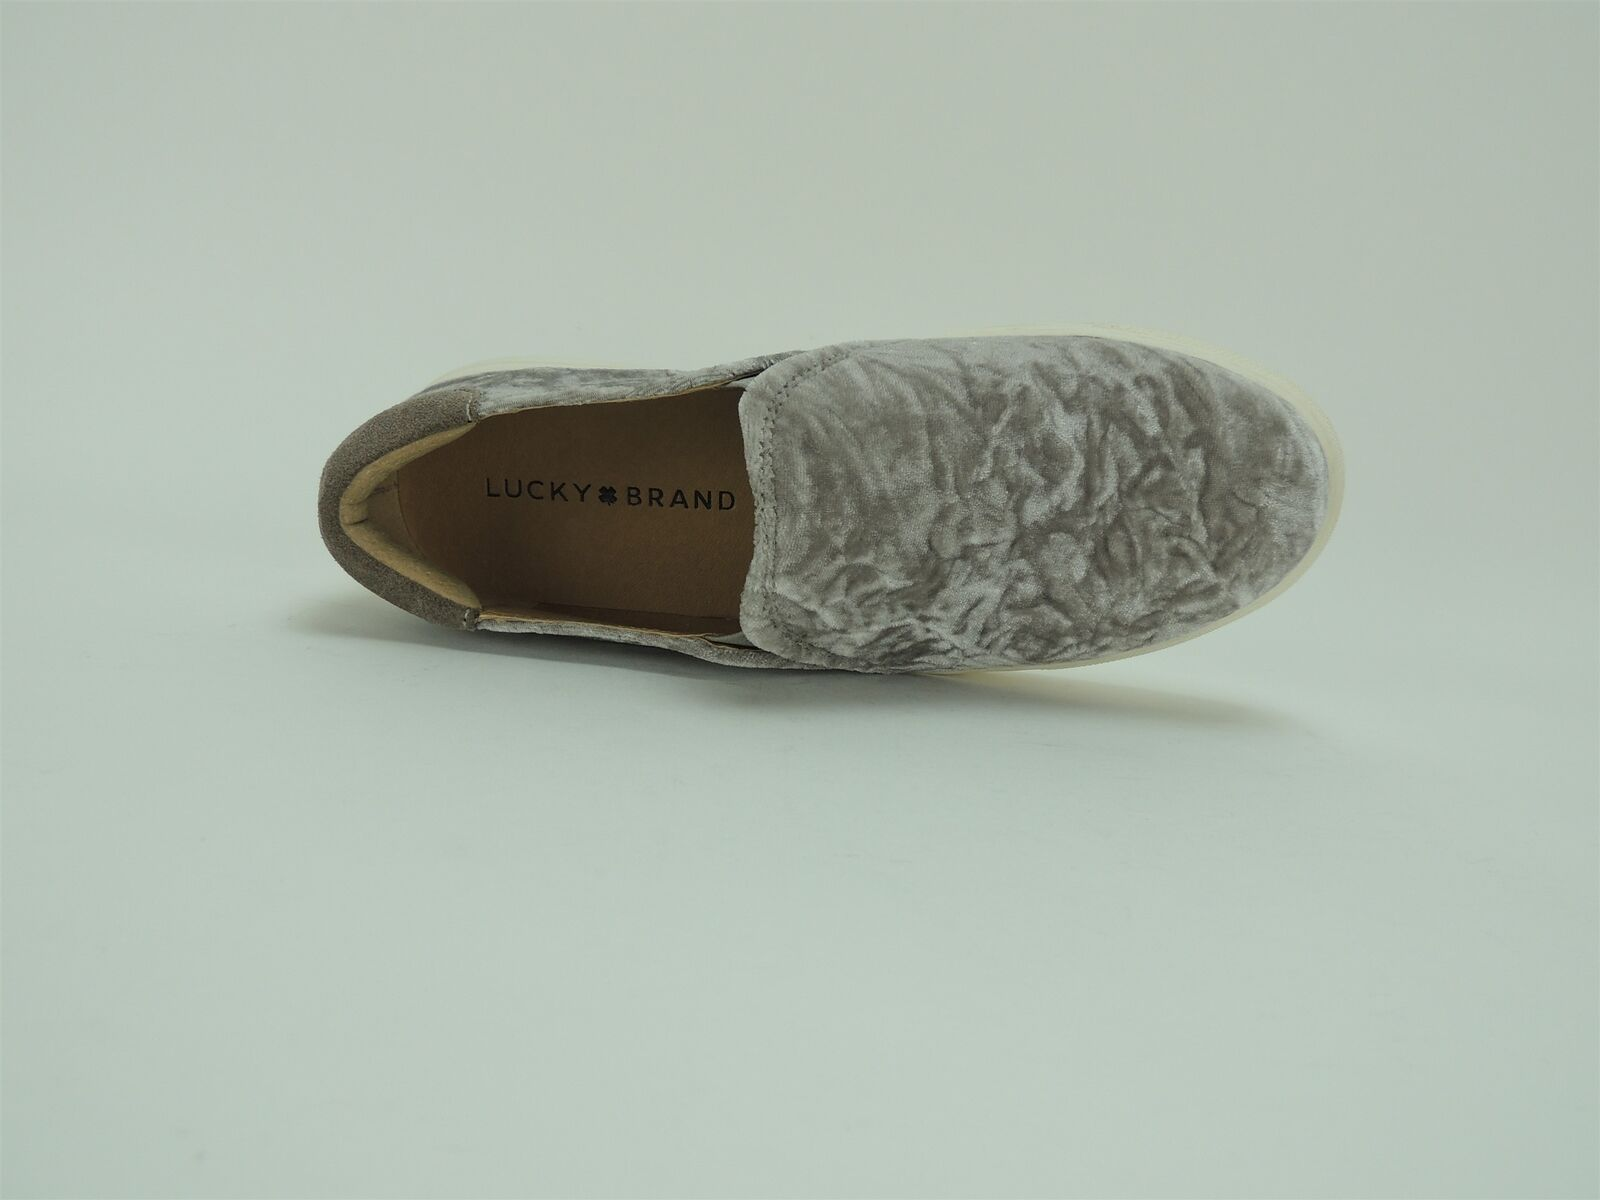 Lucky Brand Women's Lupa Flats Mist Abstract Crushed Crushed Crushed Velvet Size 6 M b39c77